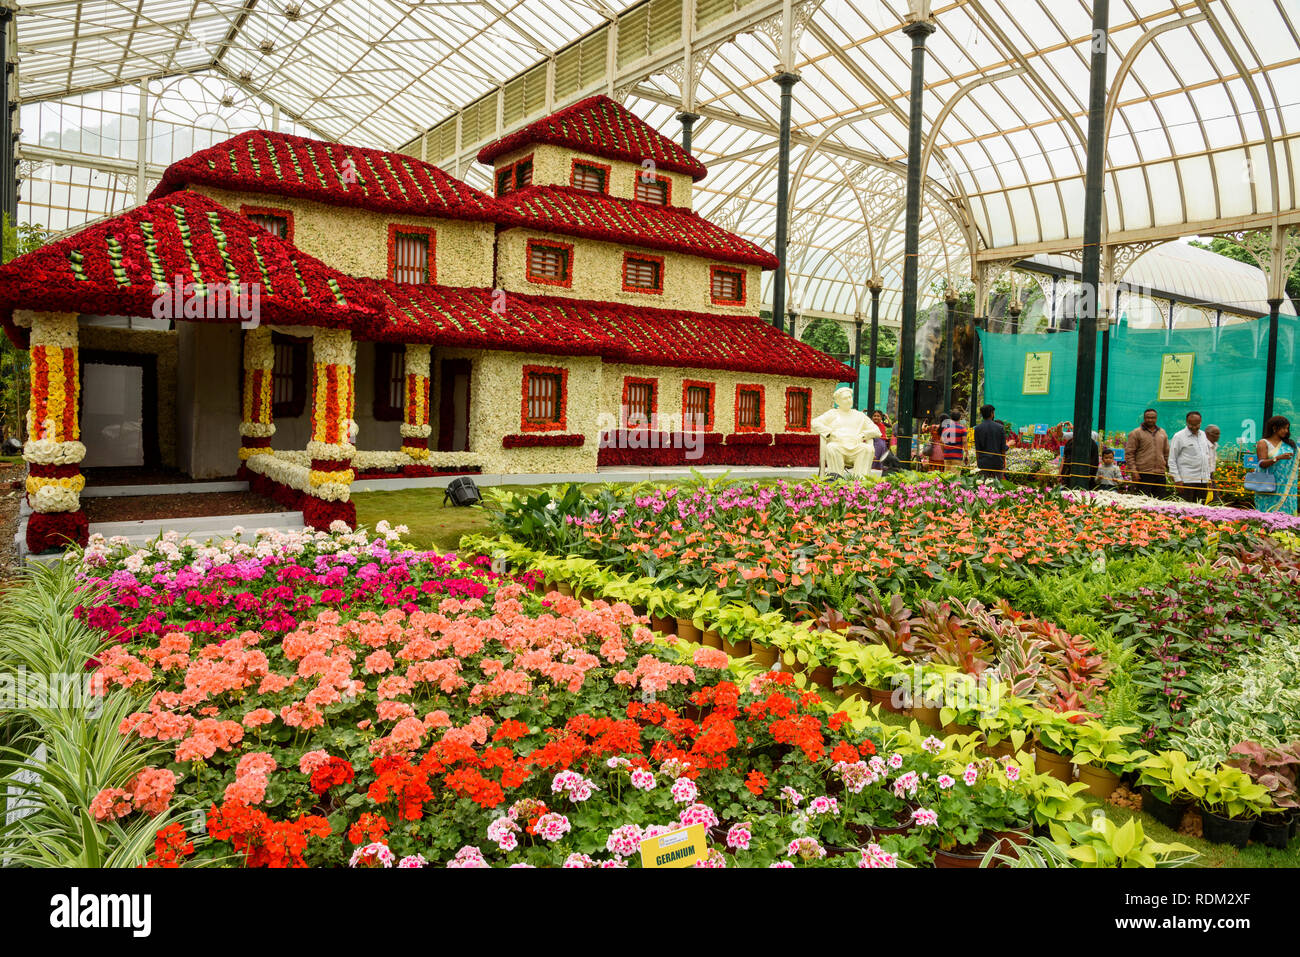 05e3fd5d055d Lalbagh Flowers Stock Photos   Lalbagh Flowers Stock Images - Alamy